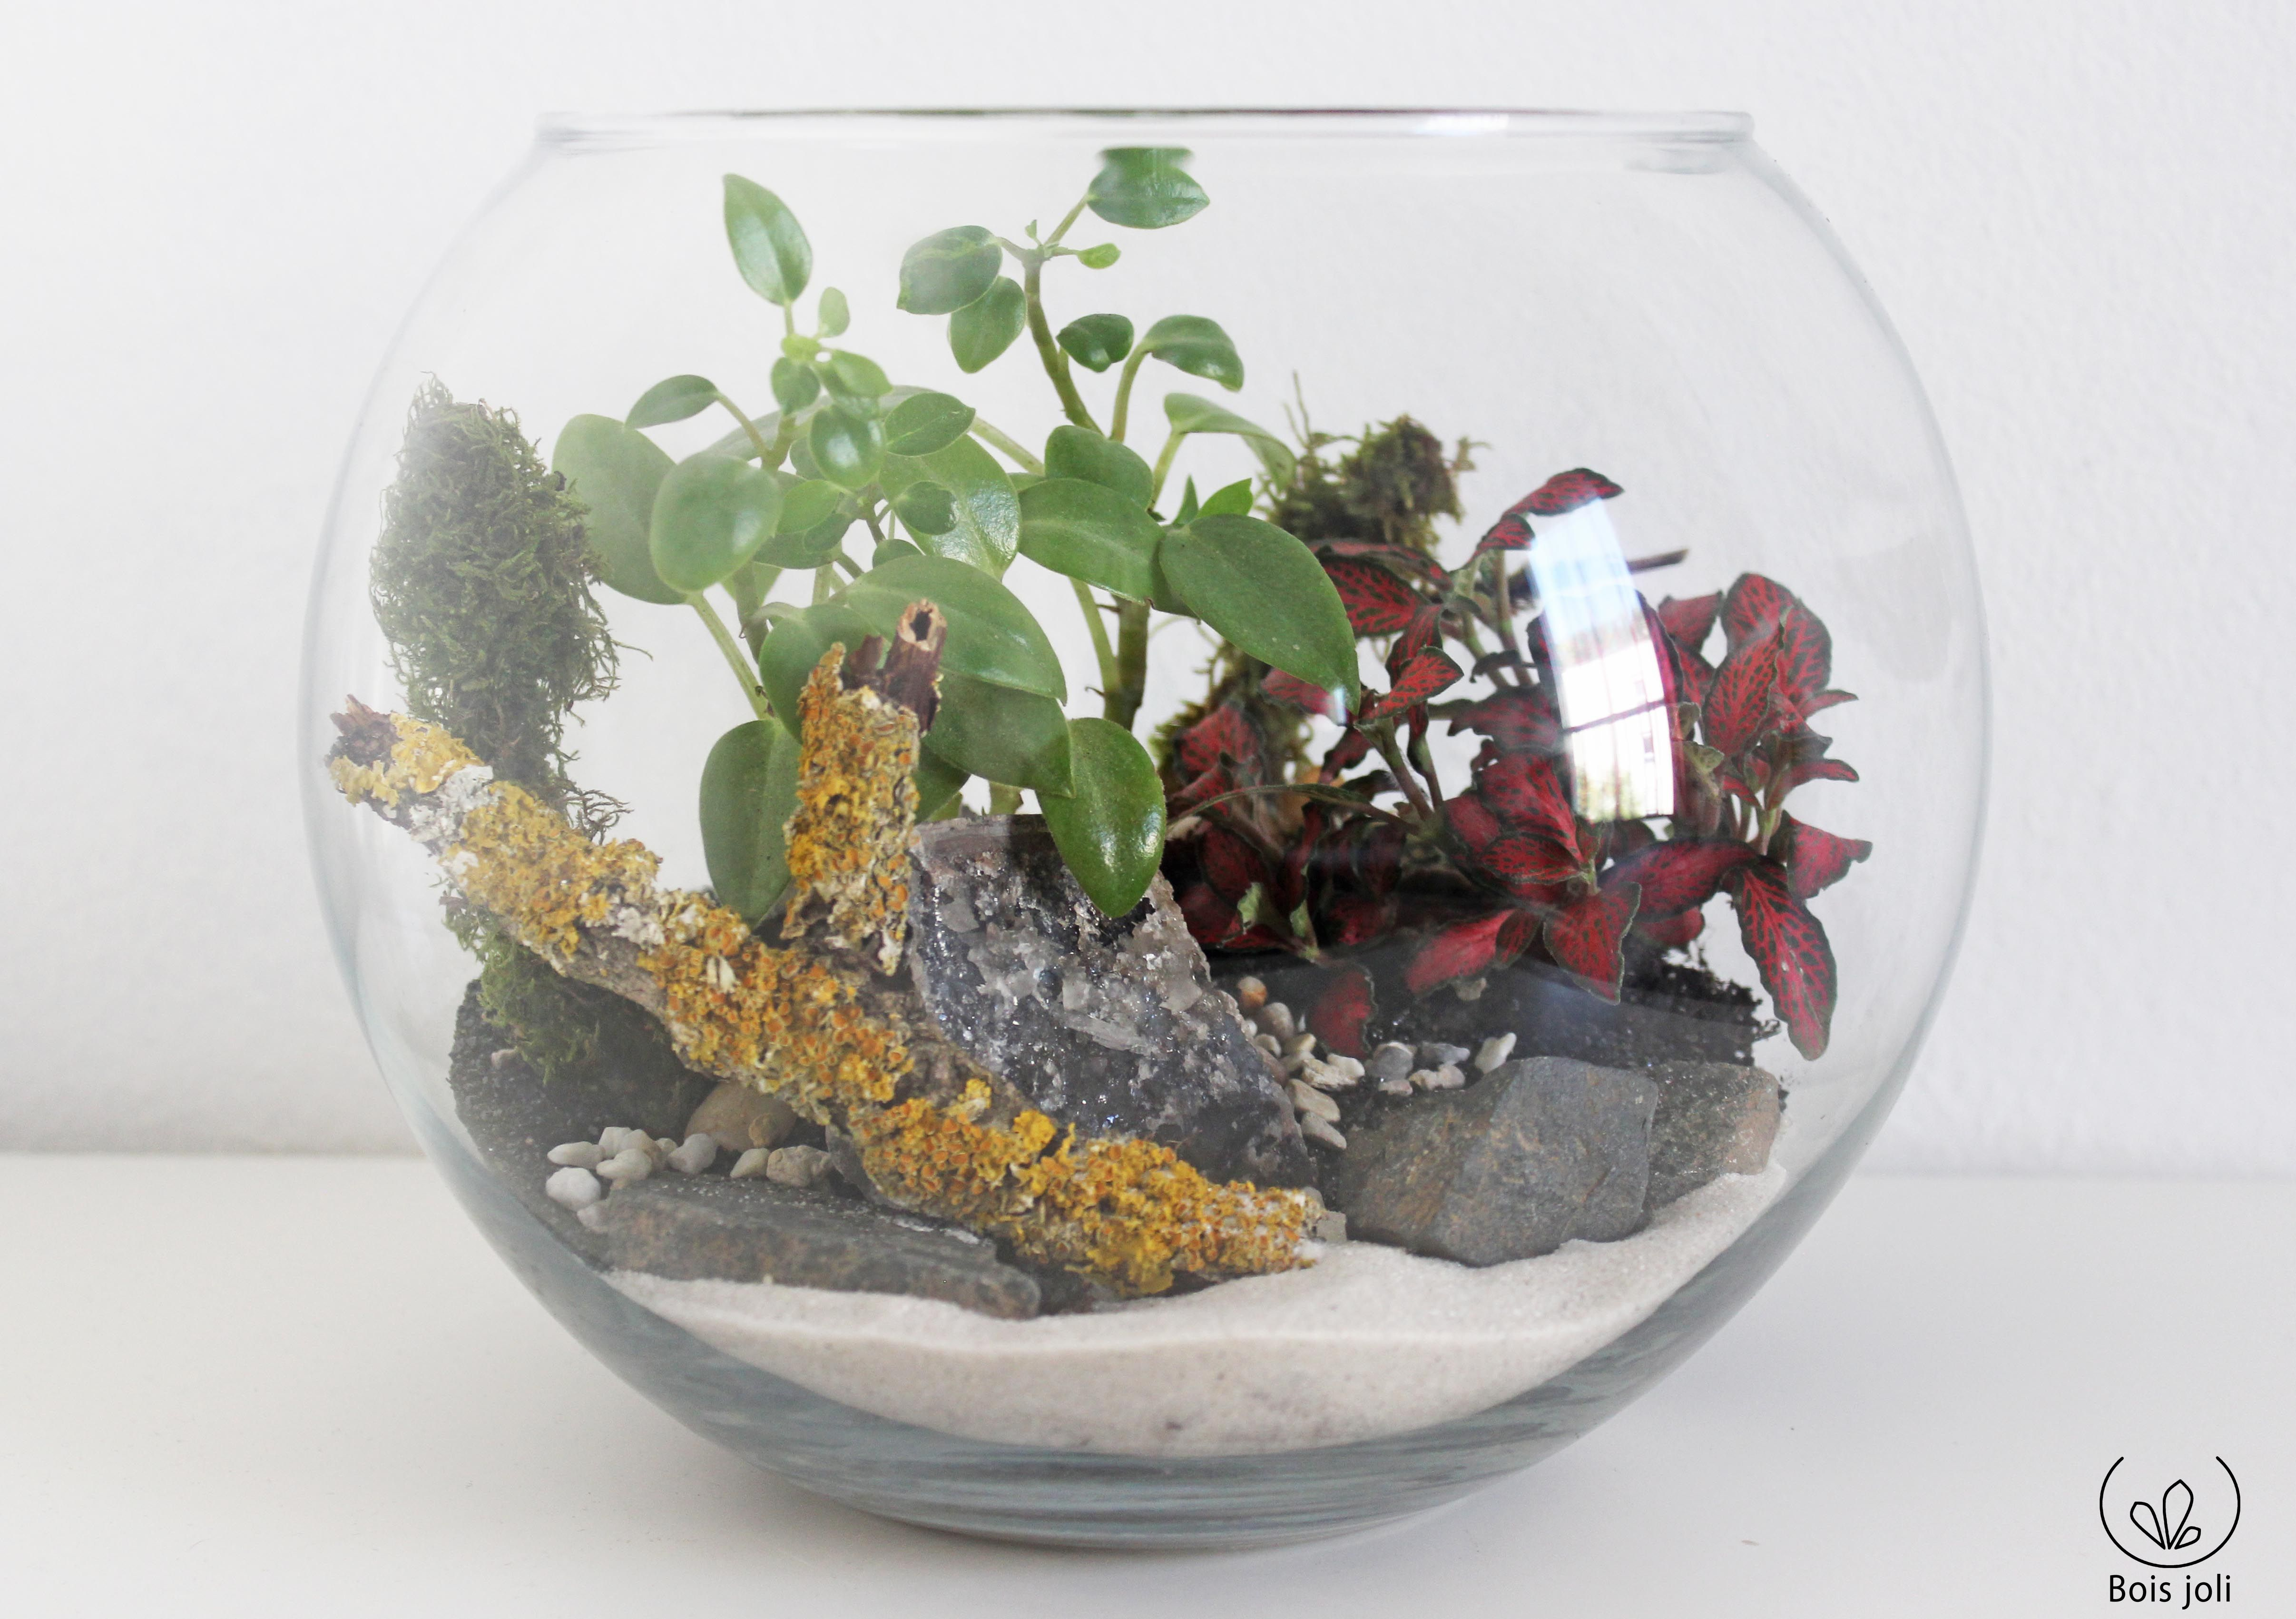 Tropical Fishbowl  Peperomia, Fittonia, Lichen, Mousse